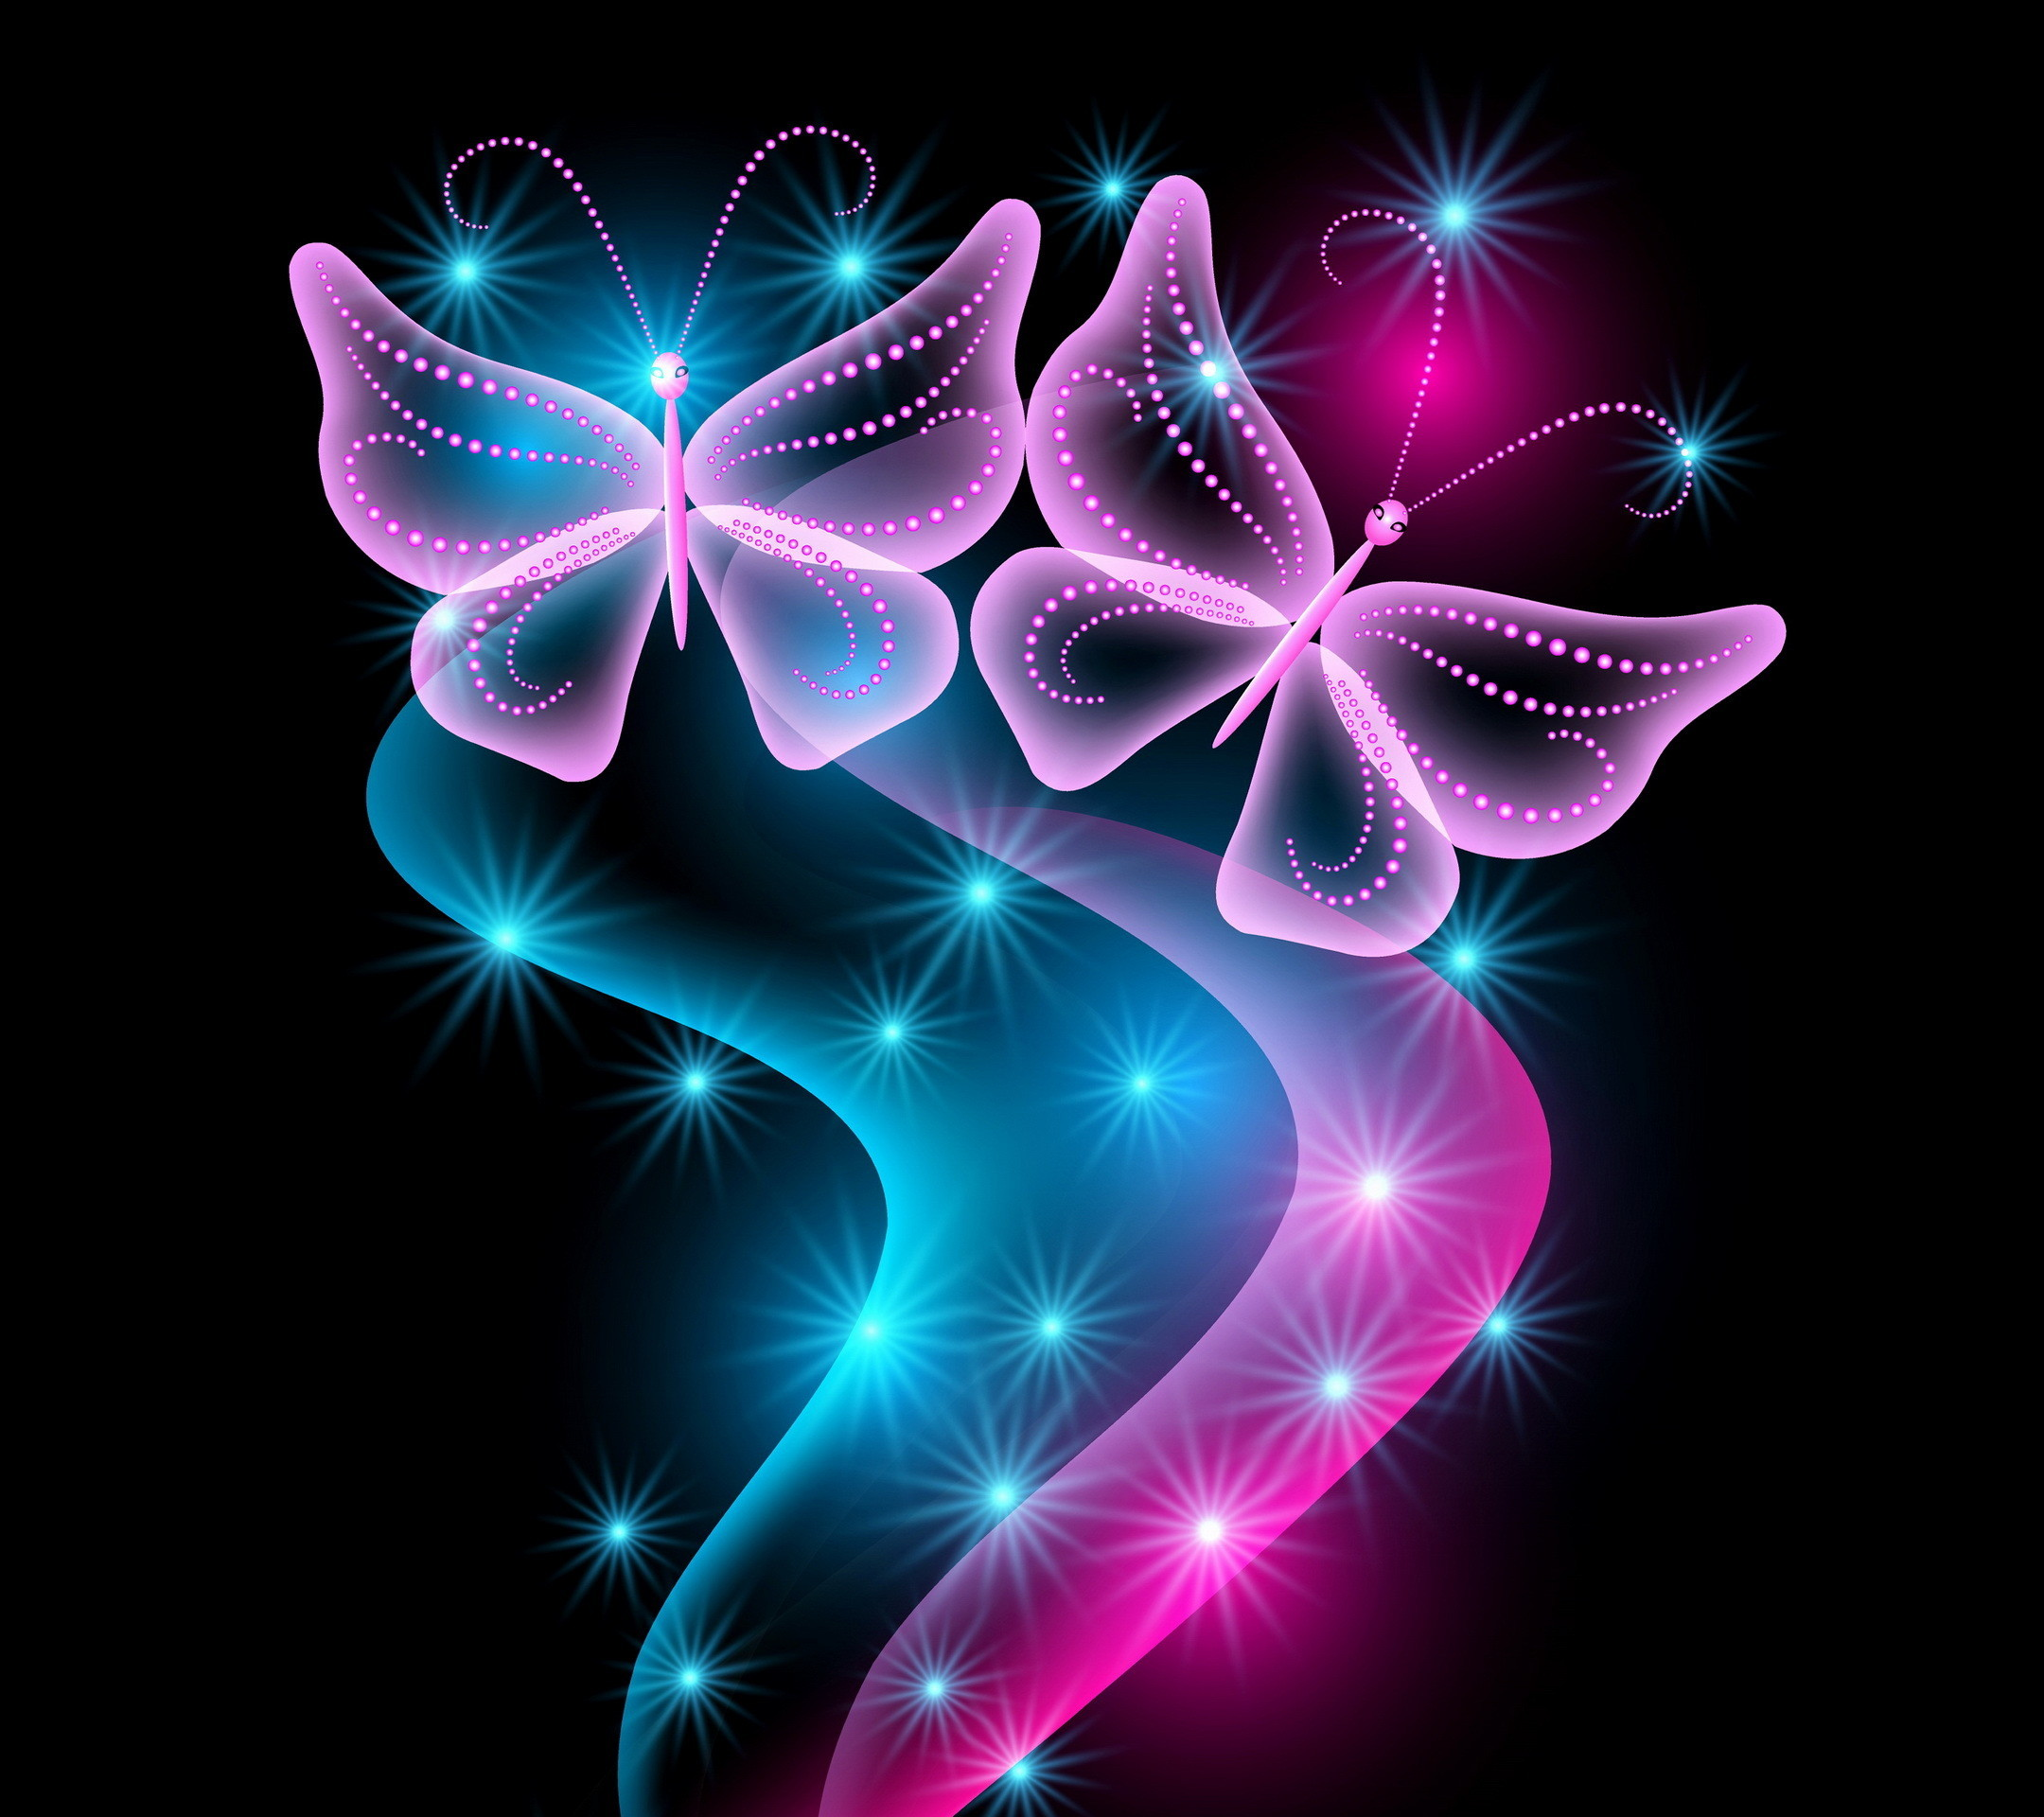 Pink and Purple Glitter Wallpapers (67+ images) Pink Glitter Butterfly Wallpaper